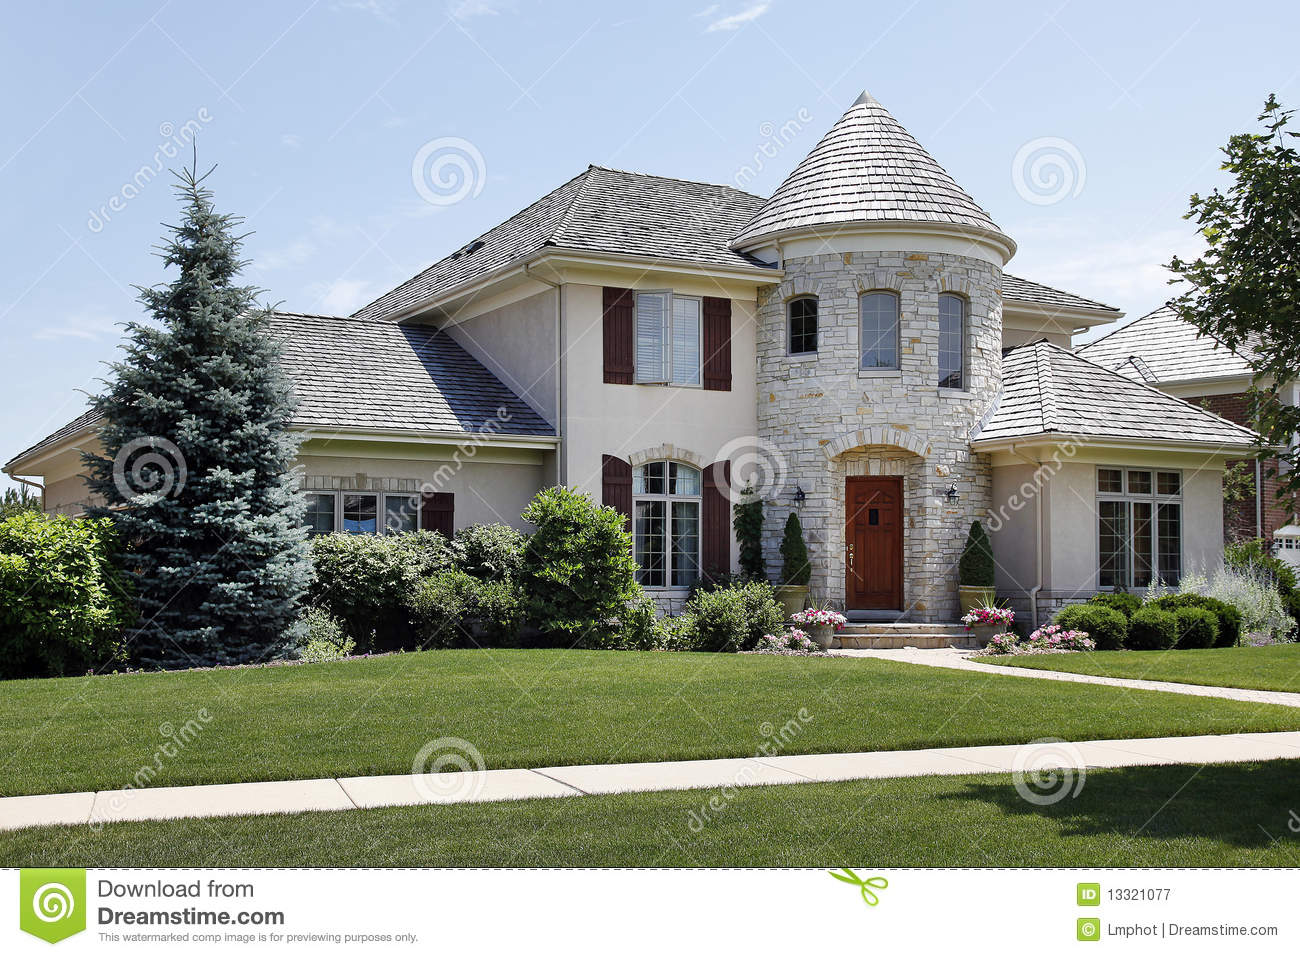 Luxury home with stone turret royalty free stock for Free luxury home images